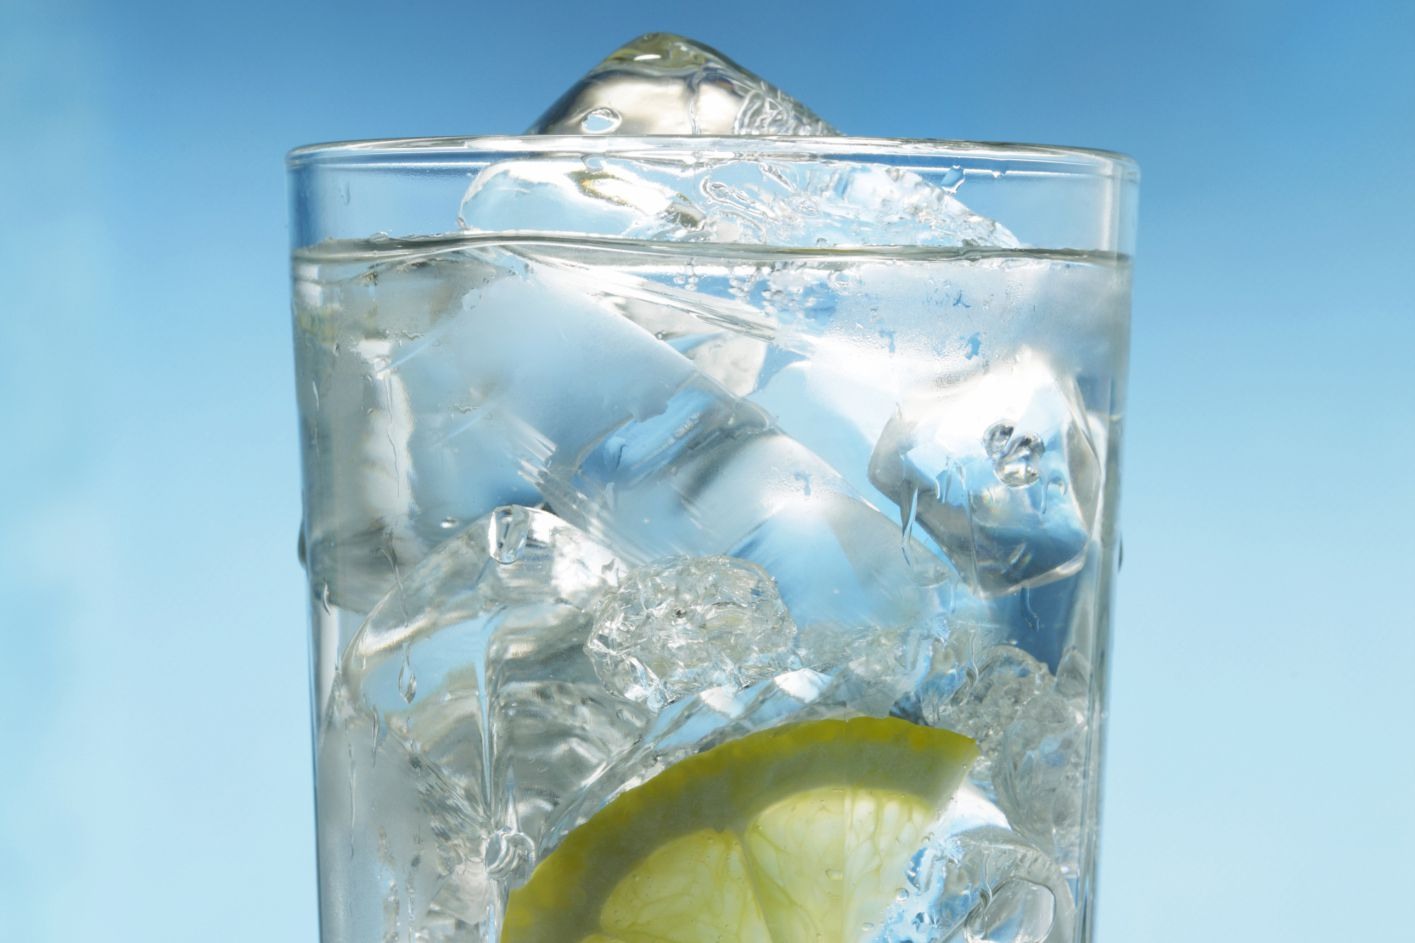 Ice in a glass of water